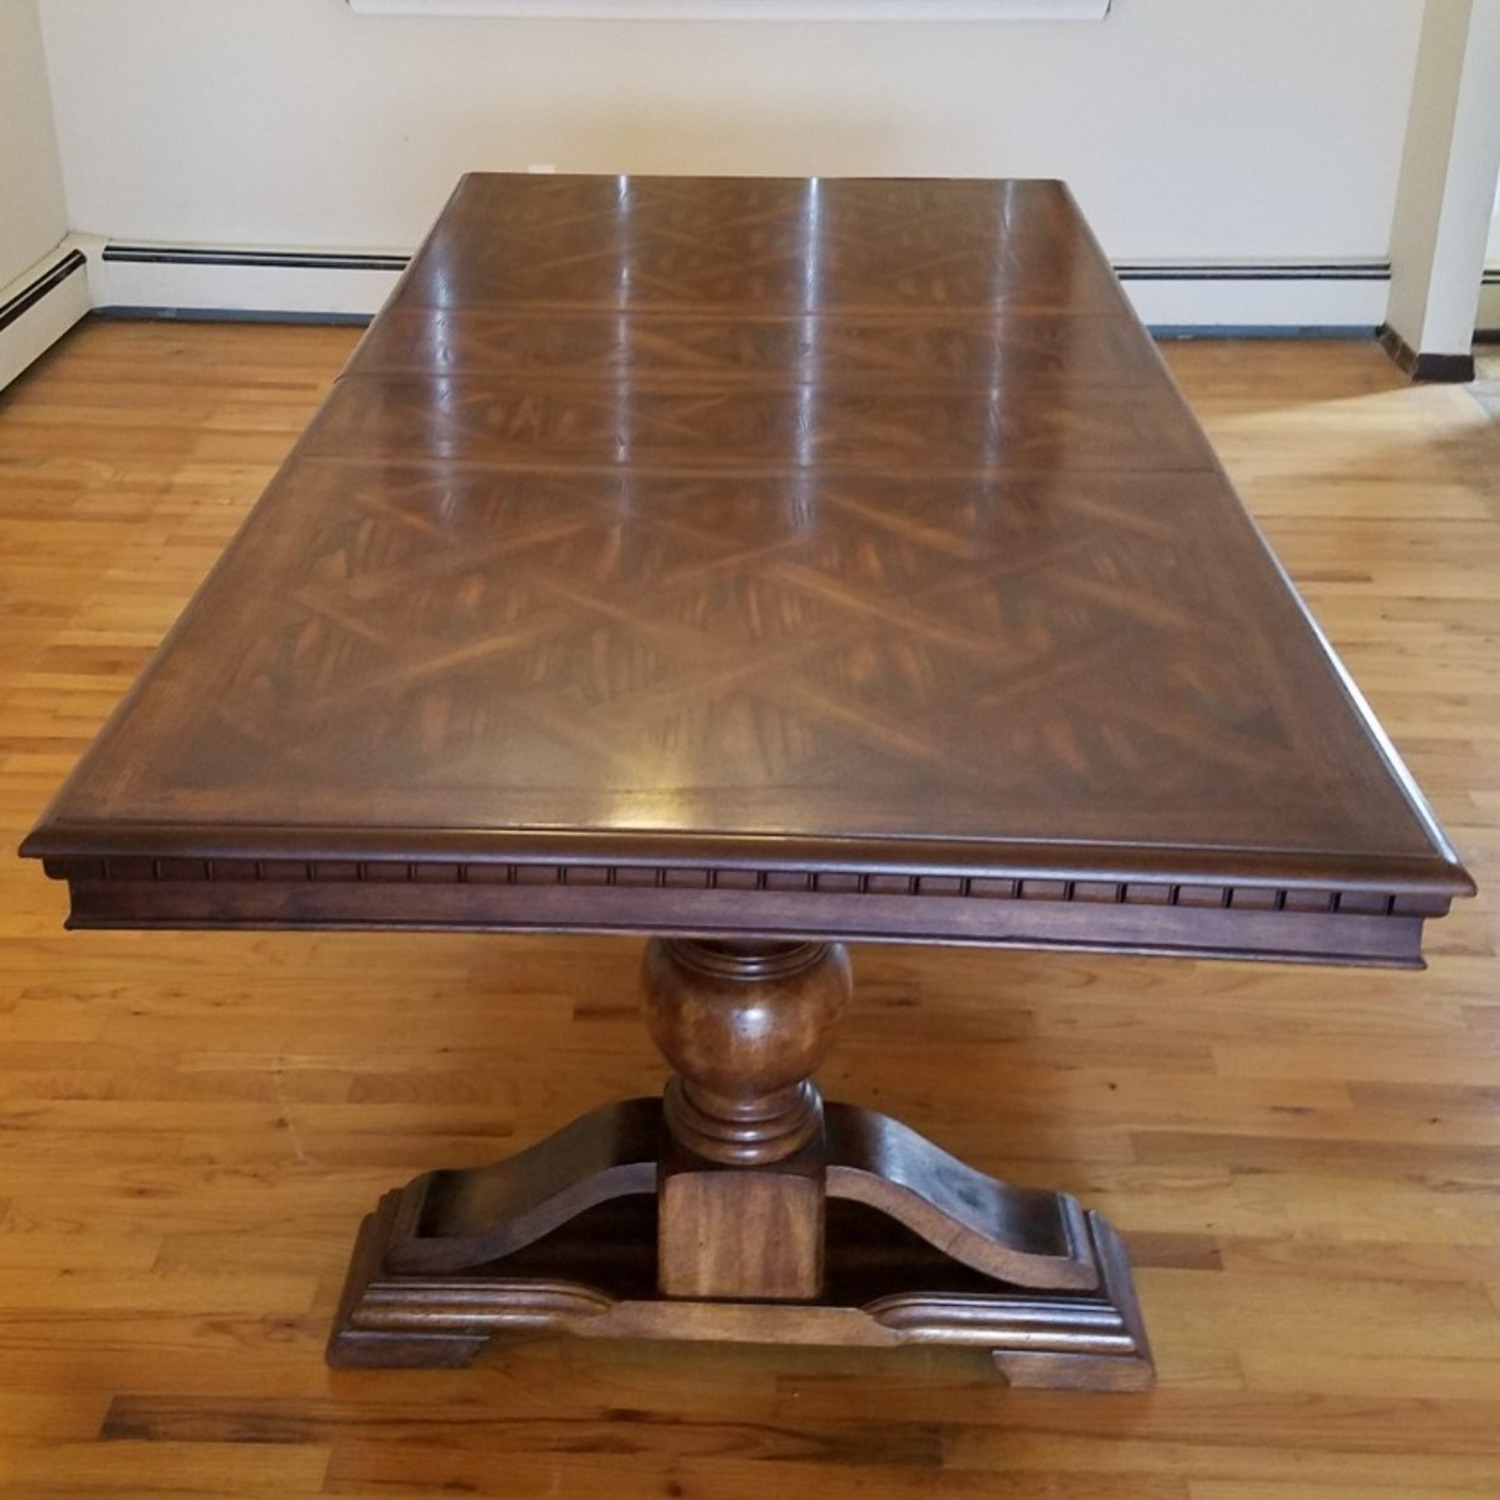 Double Pedestal Dining Table w/ 8 Cane Back Chairs - image-18